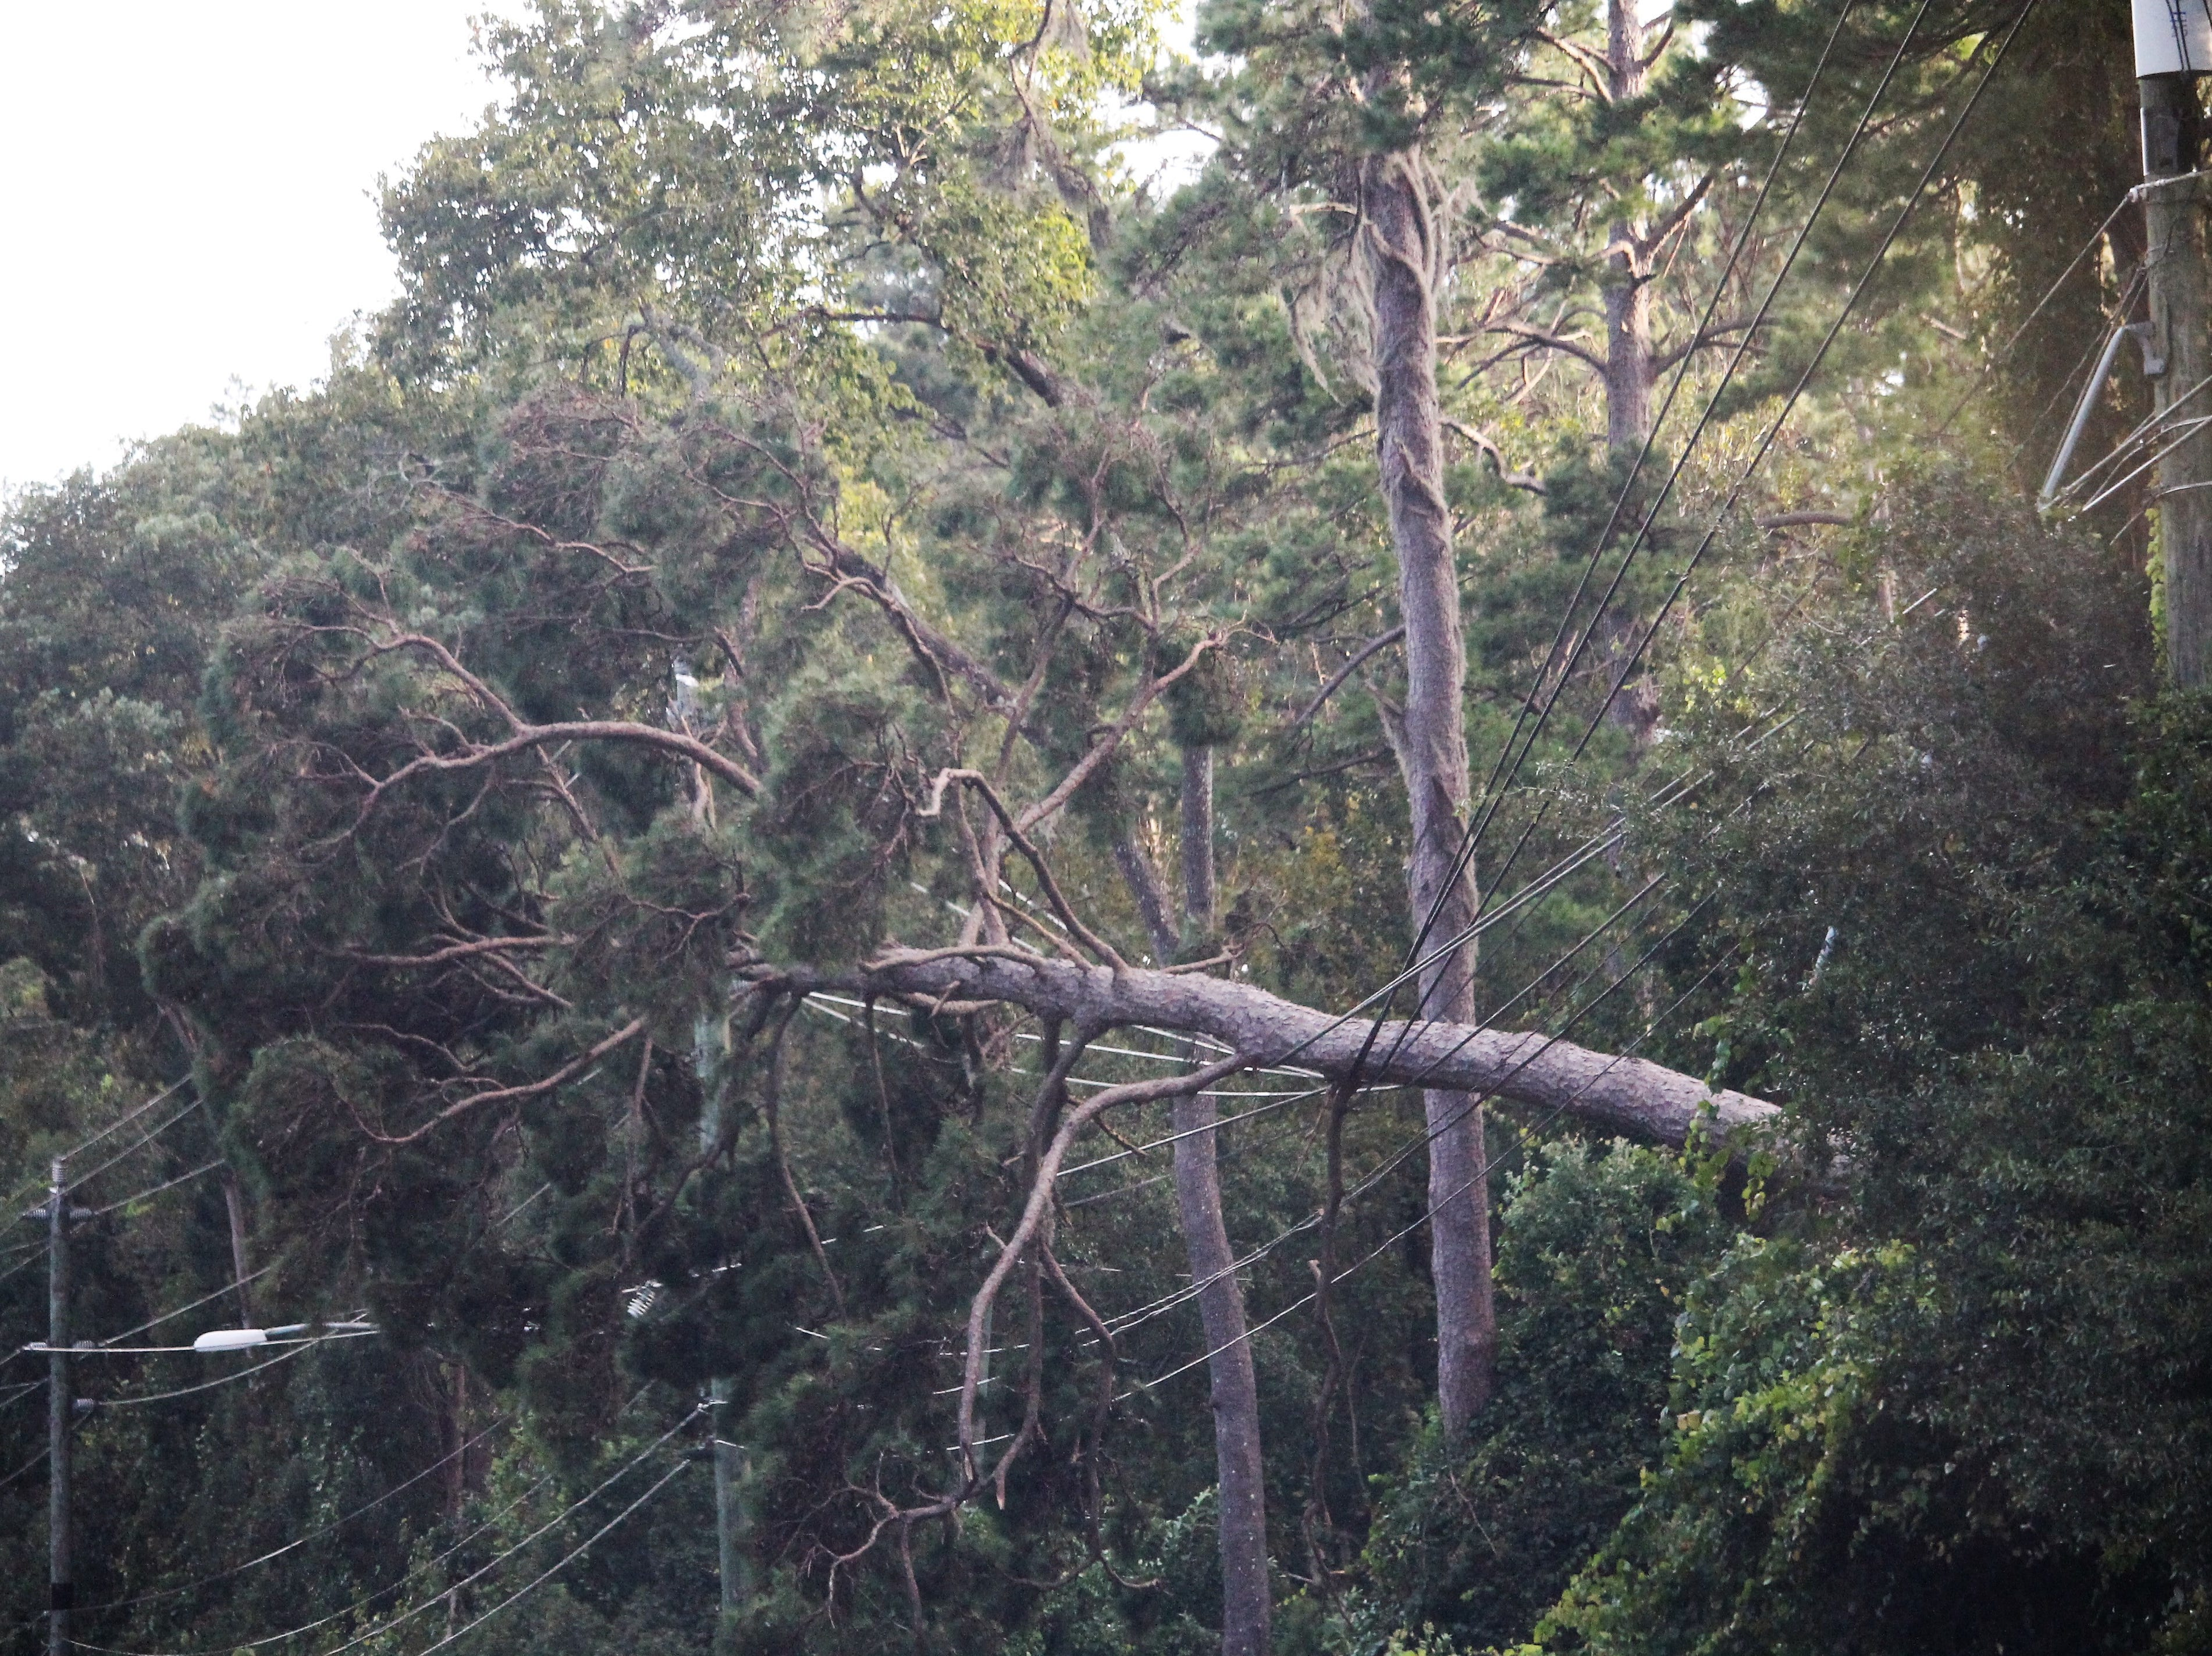 Large fallen tree being held up by power lines in Tallahassee.